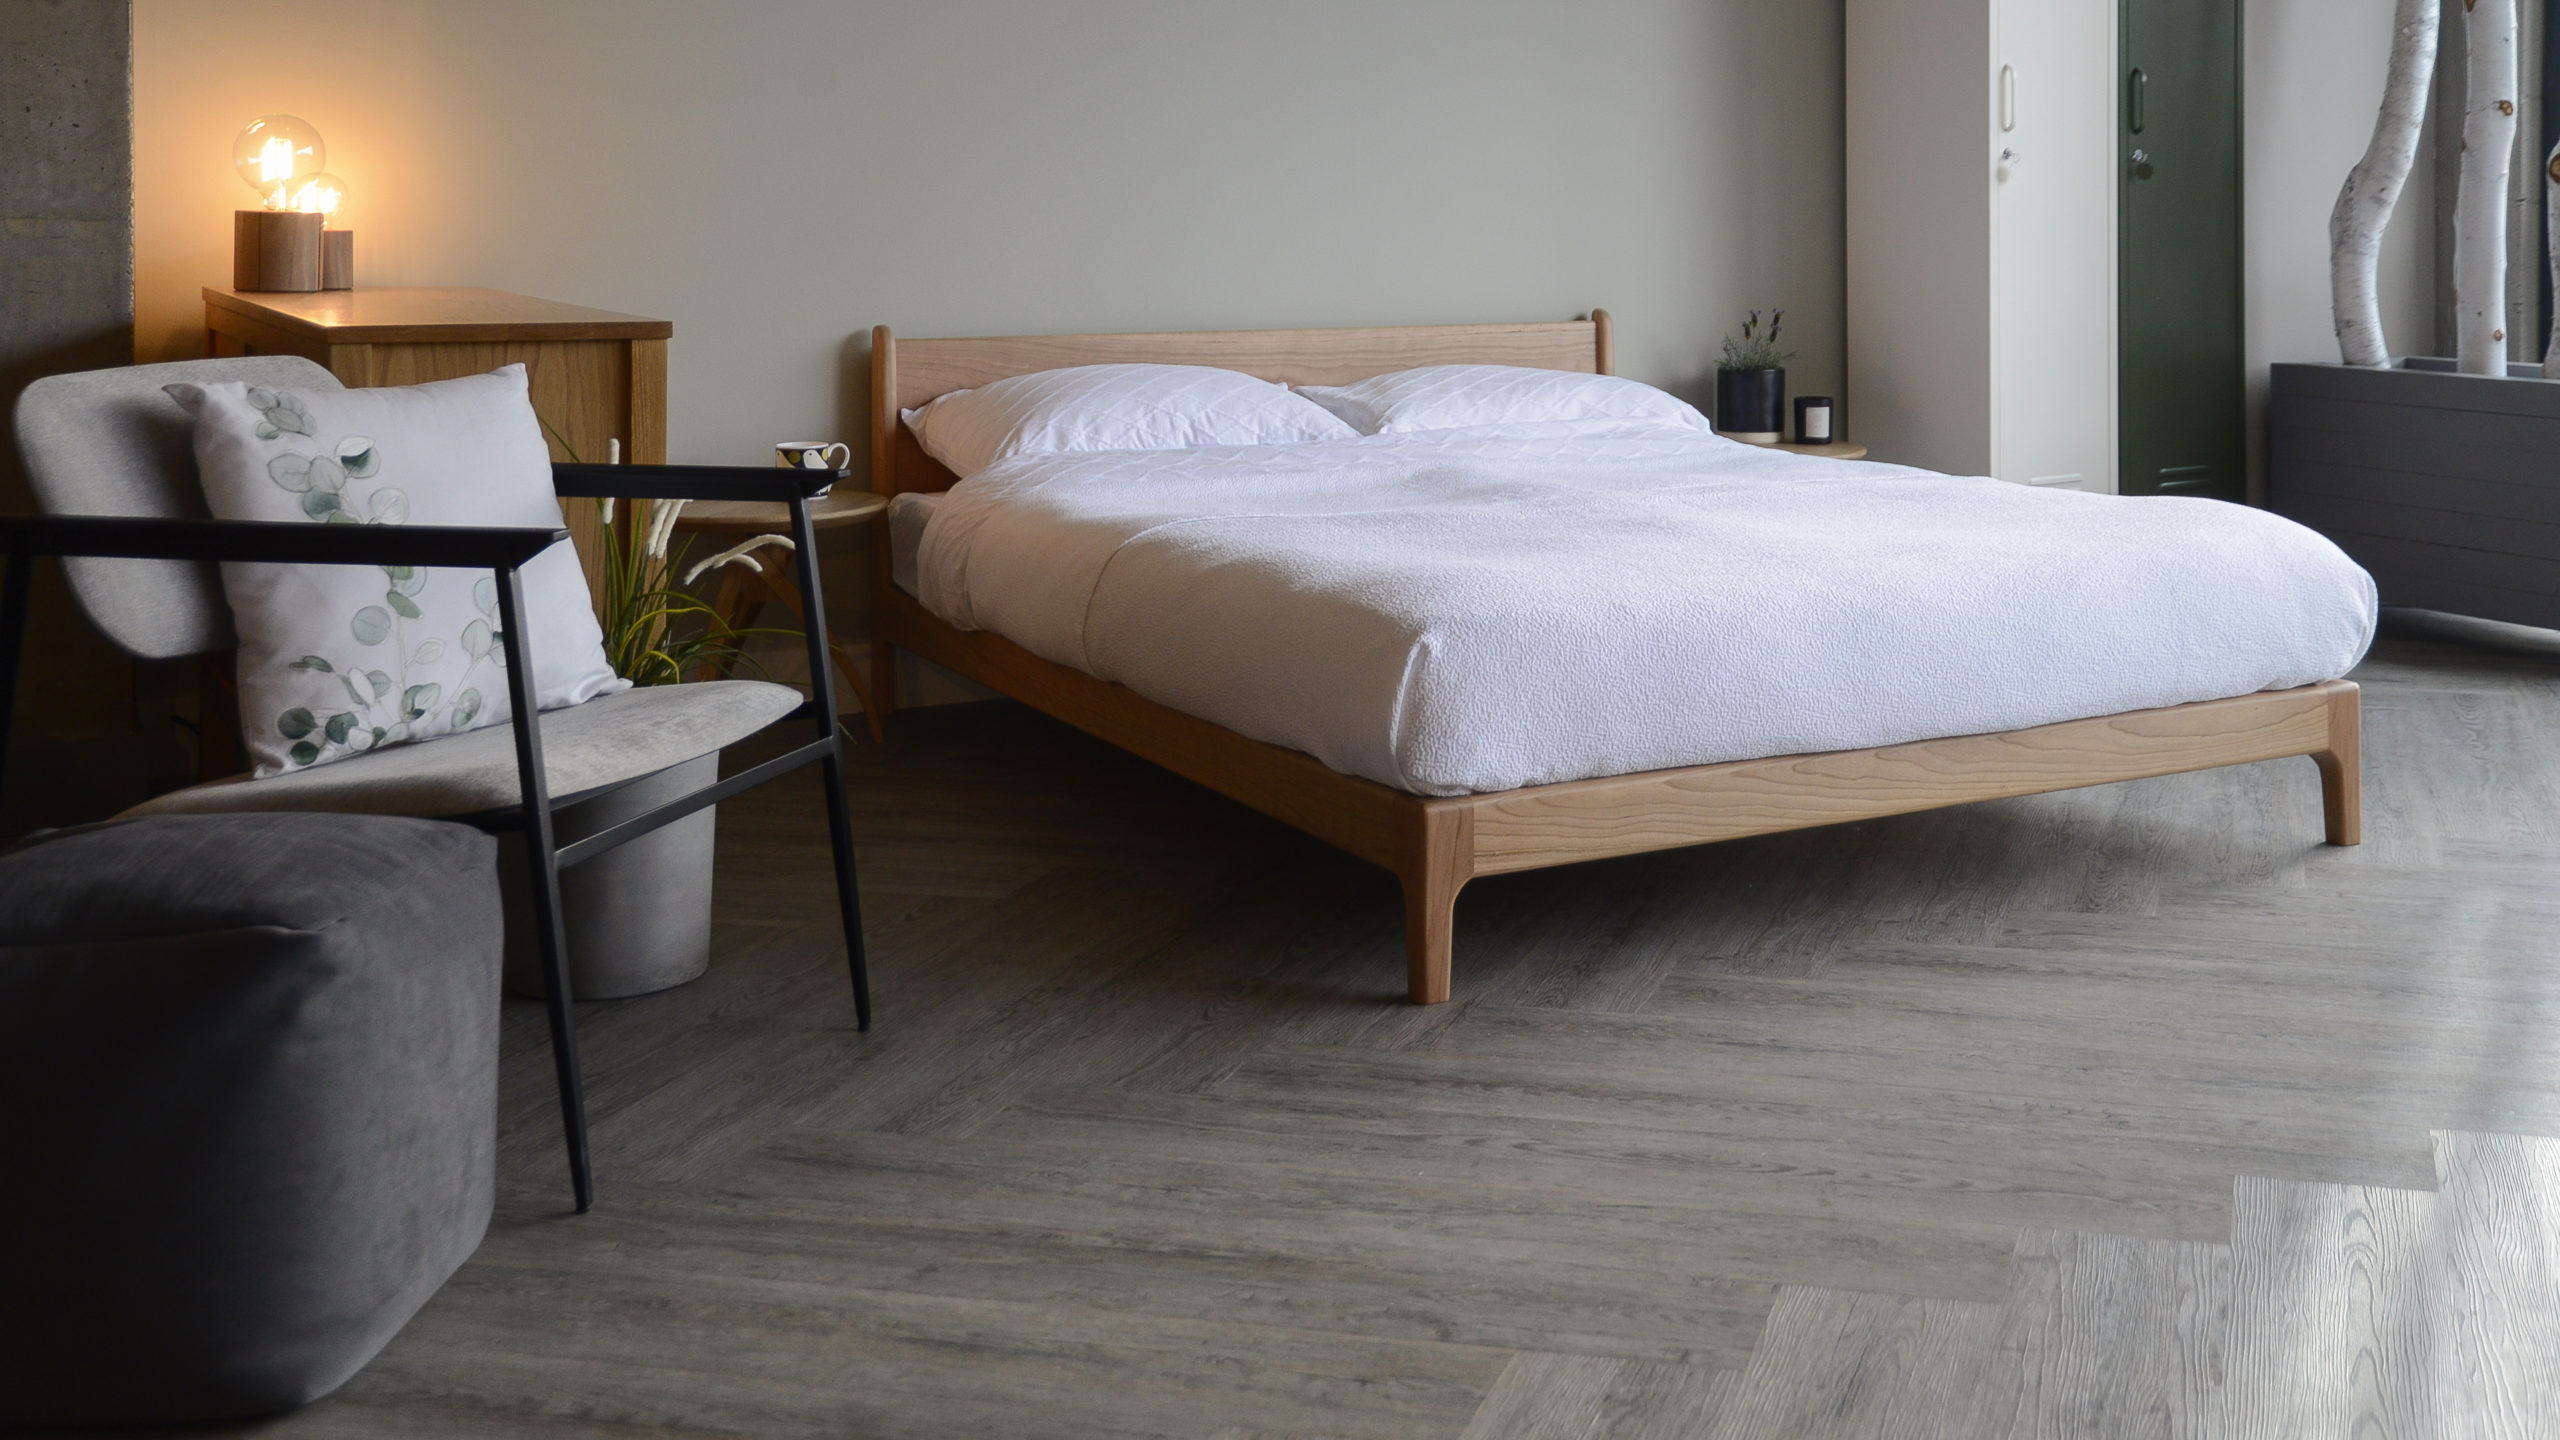 Spring bedroom look featuring the Pimlico bed, a low midcentury style wooden bed, here in cherry